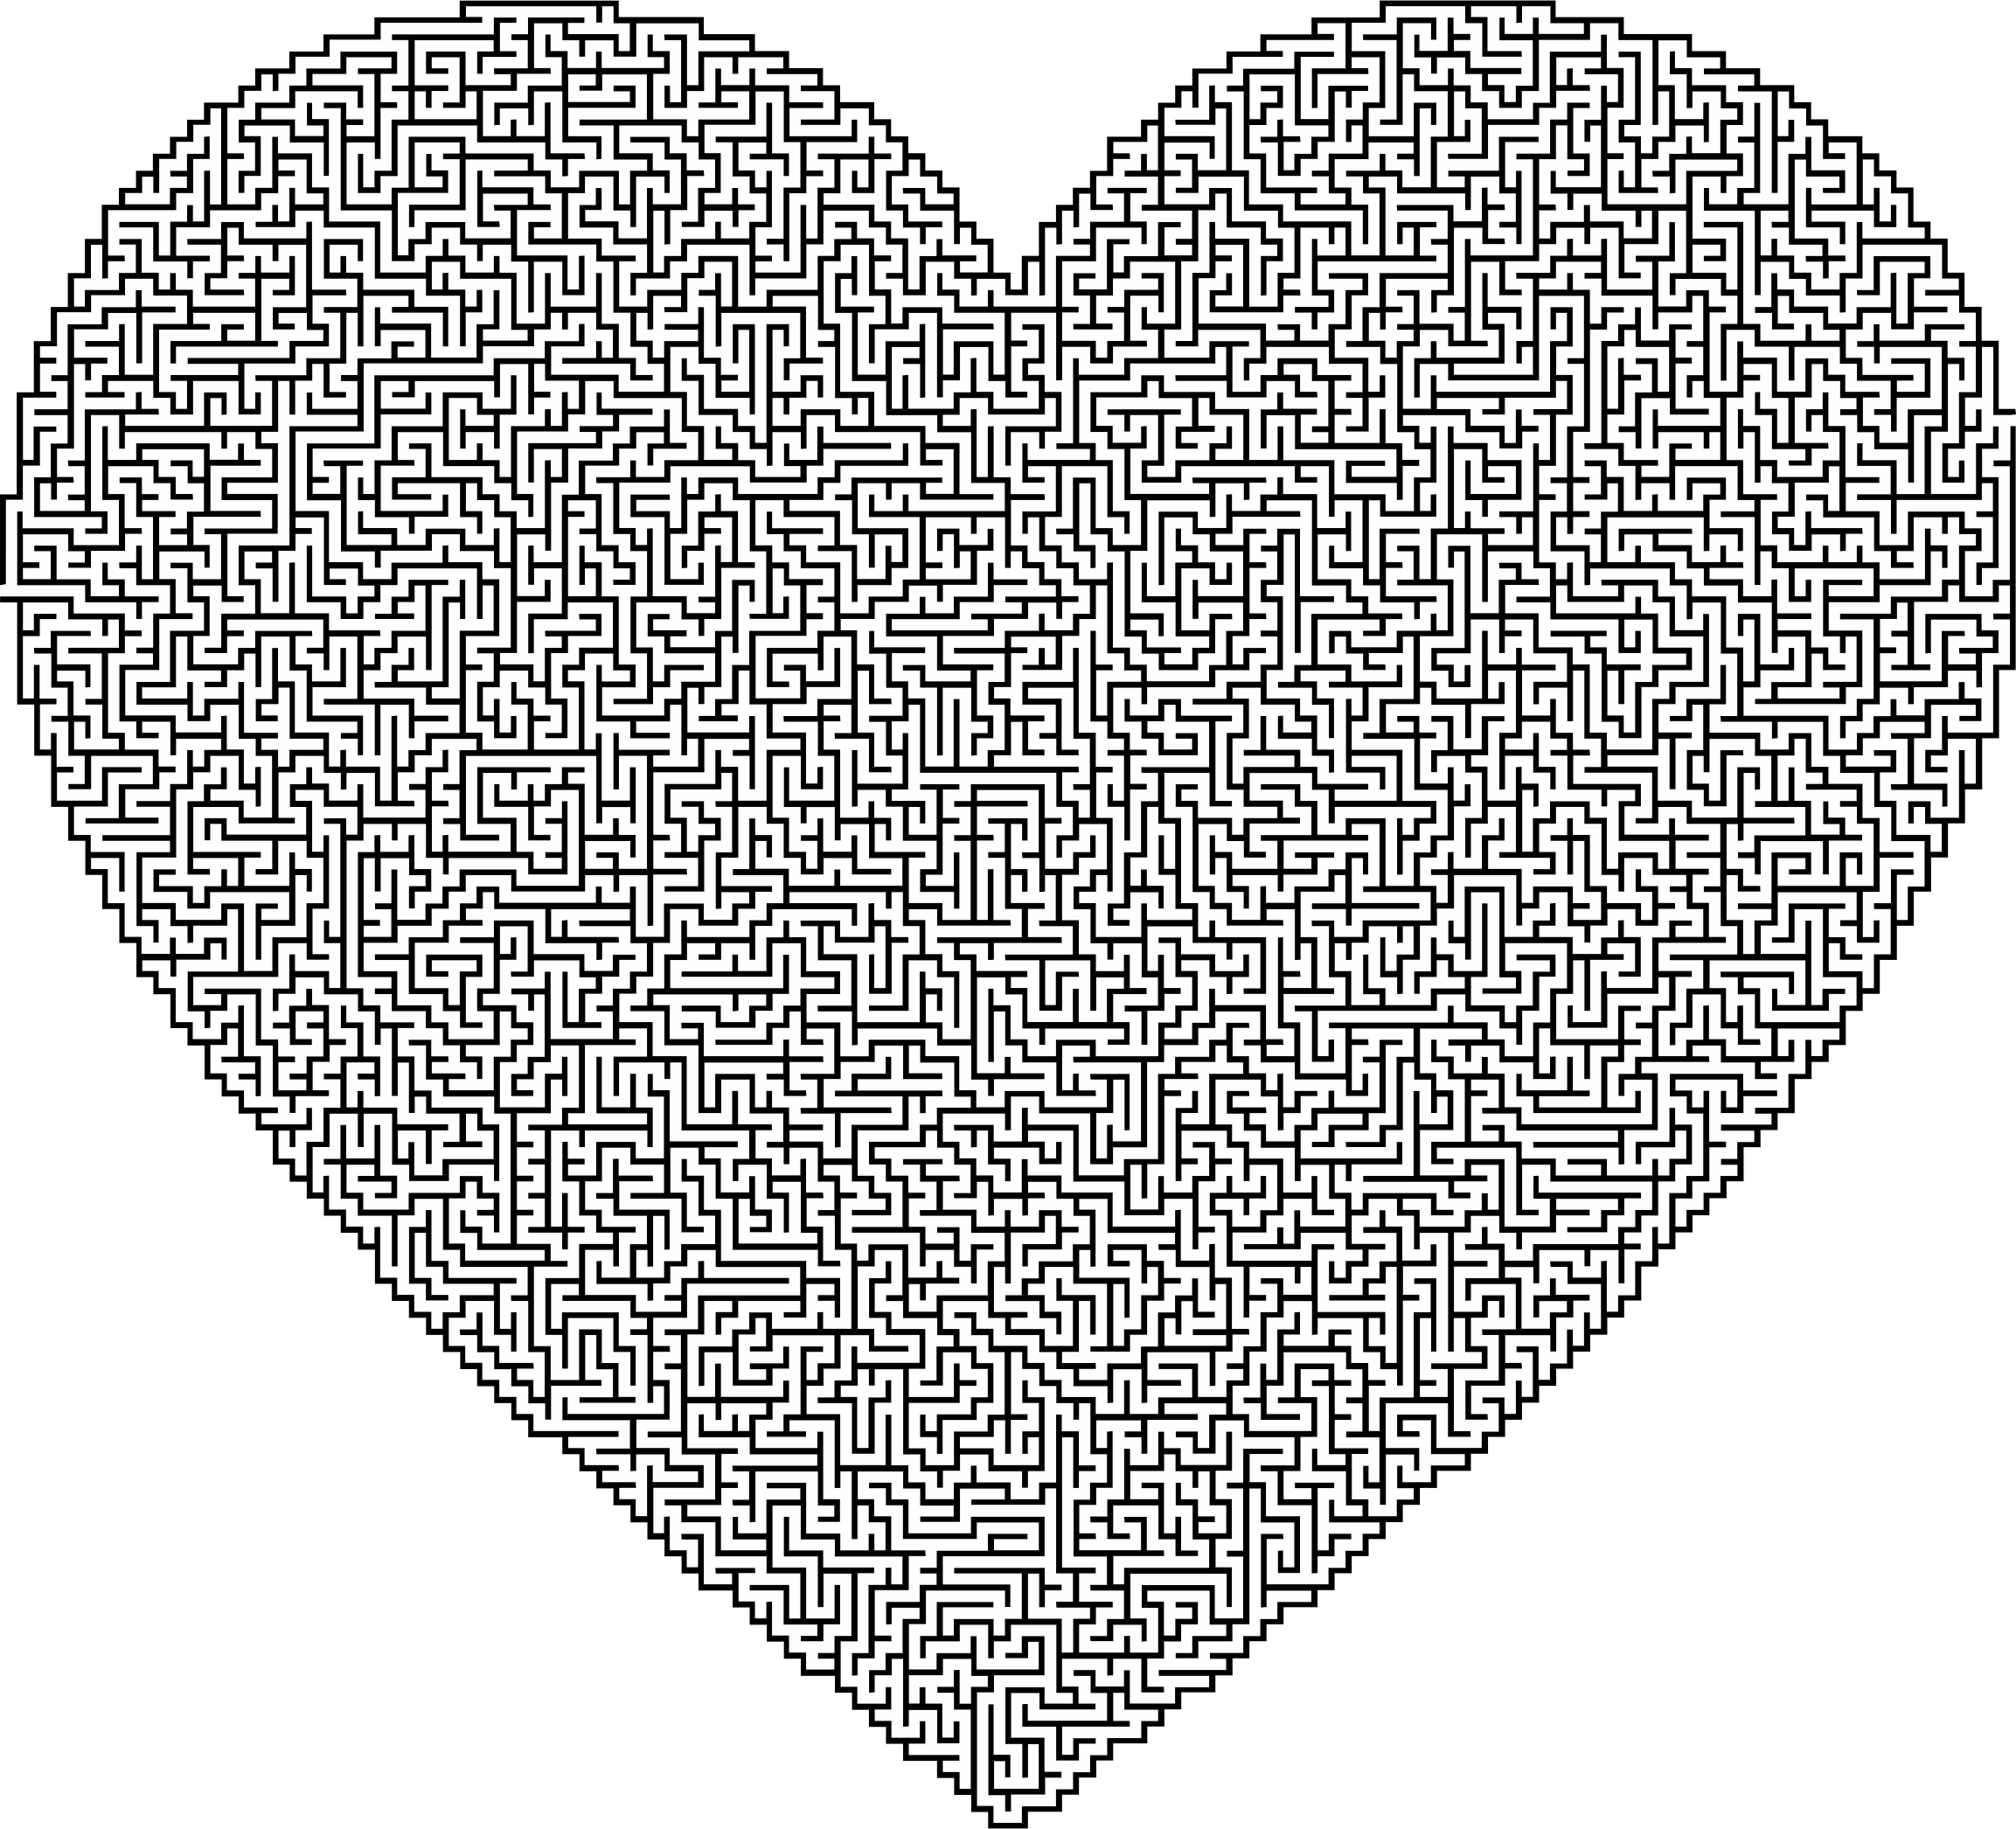 royalty free download Maze clipart heart. Big image png